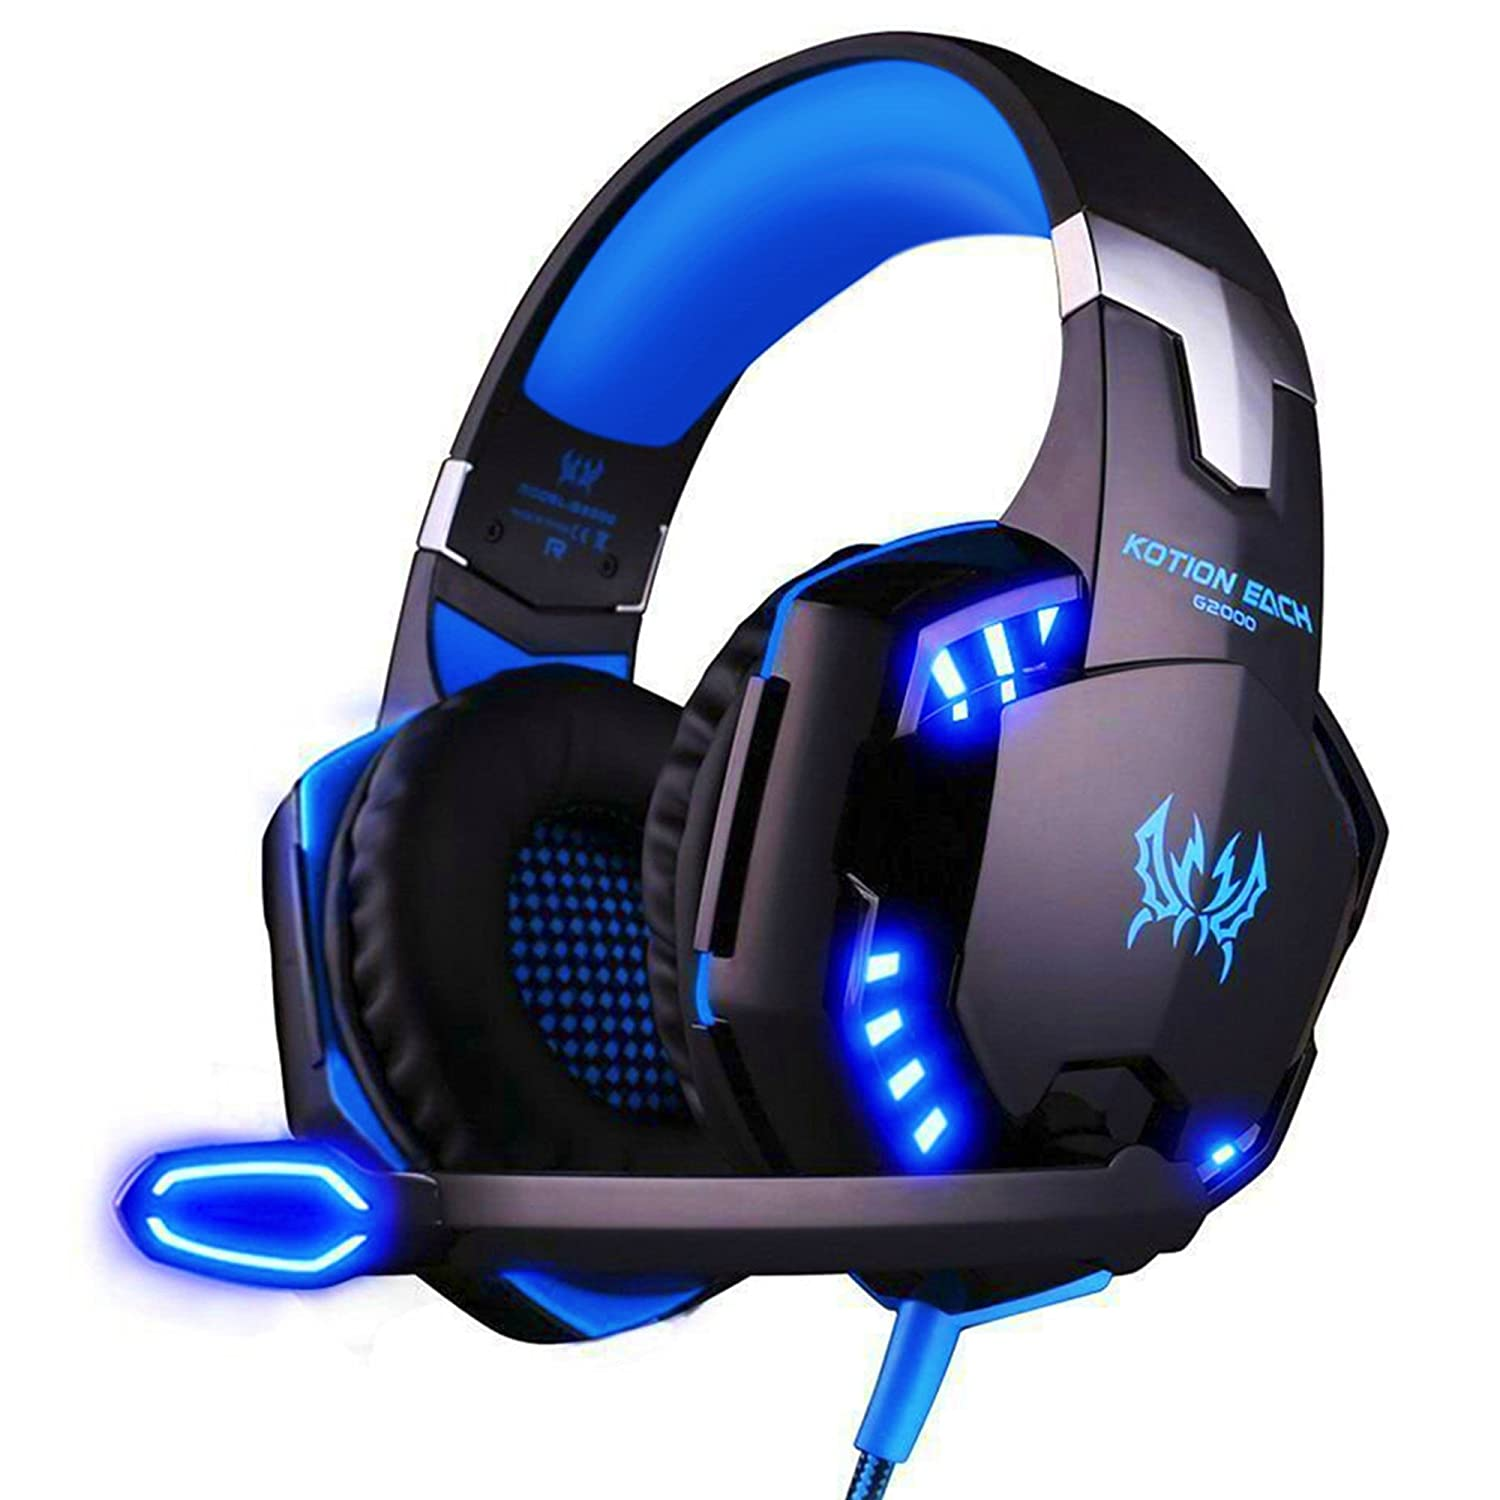 casque gaming micro arkartech g2000 casque filaire pc. Black Bedroom Furniture Sets. Home Design Ideas